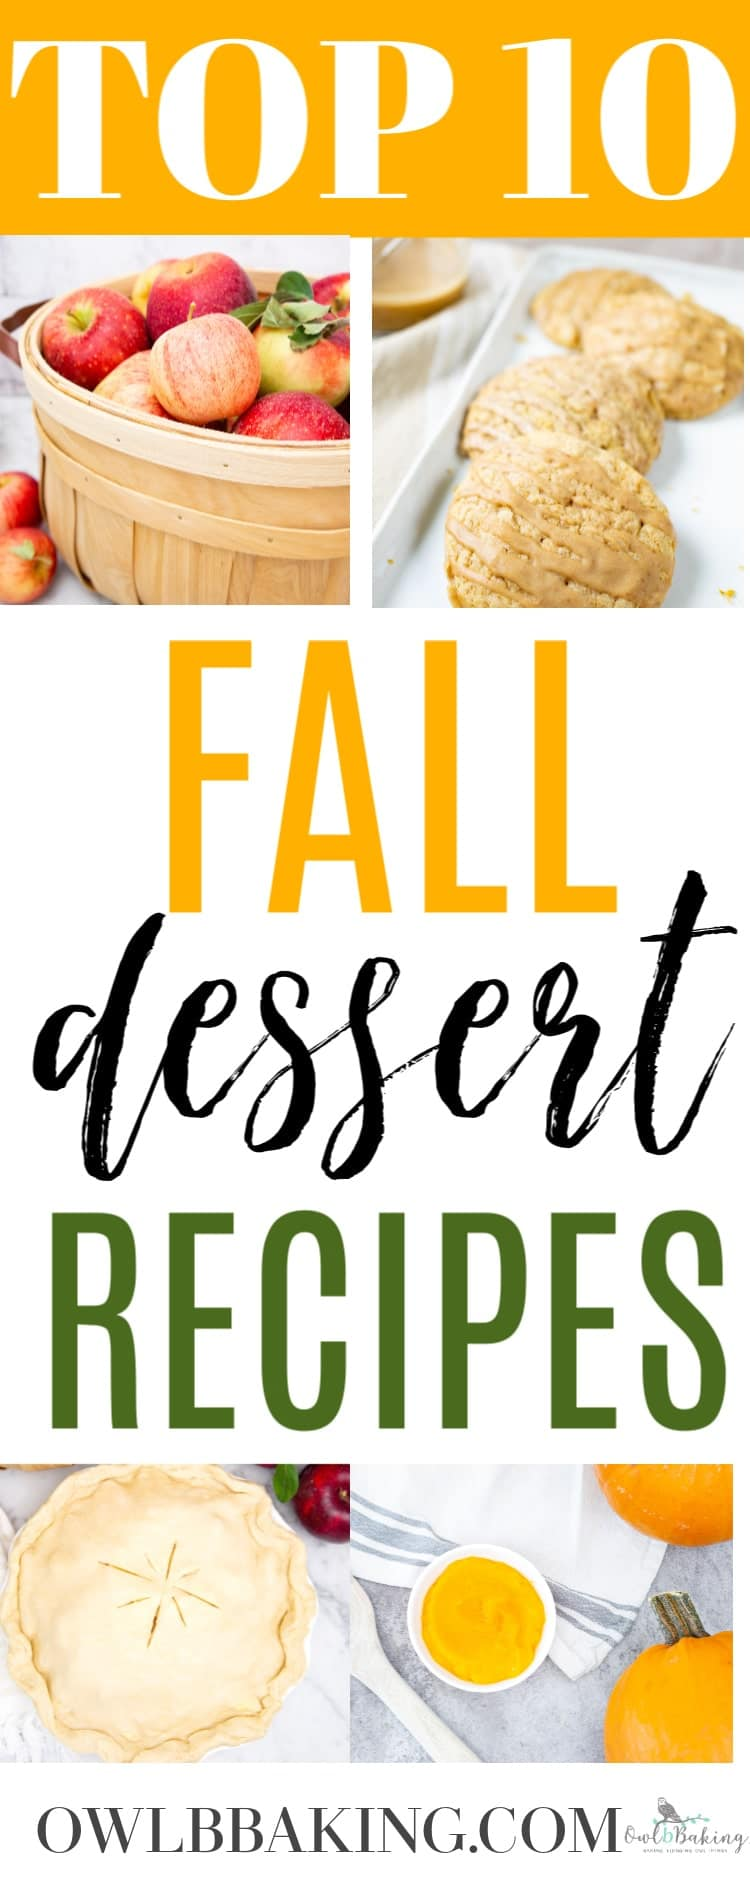 Top 10 Fall Dessert Recipes